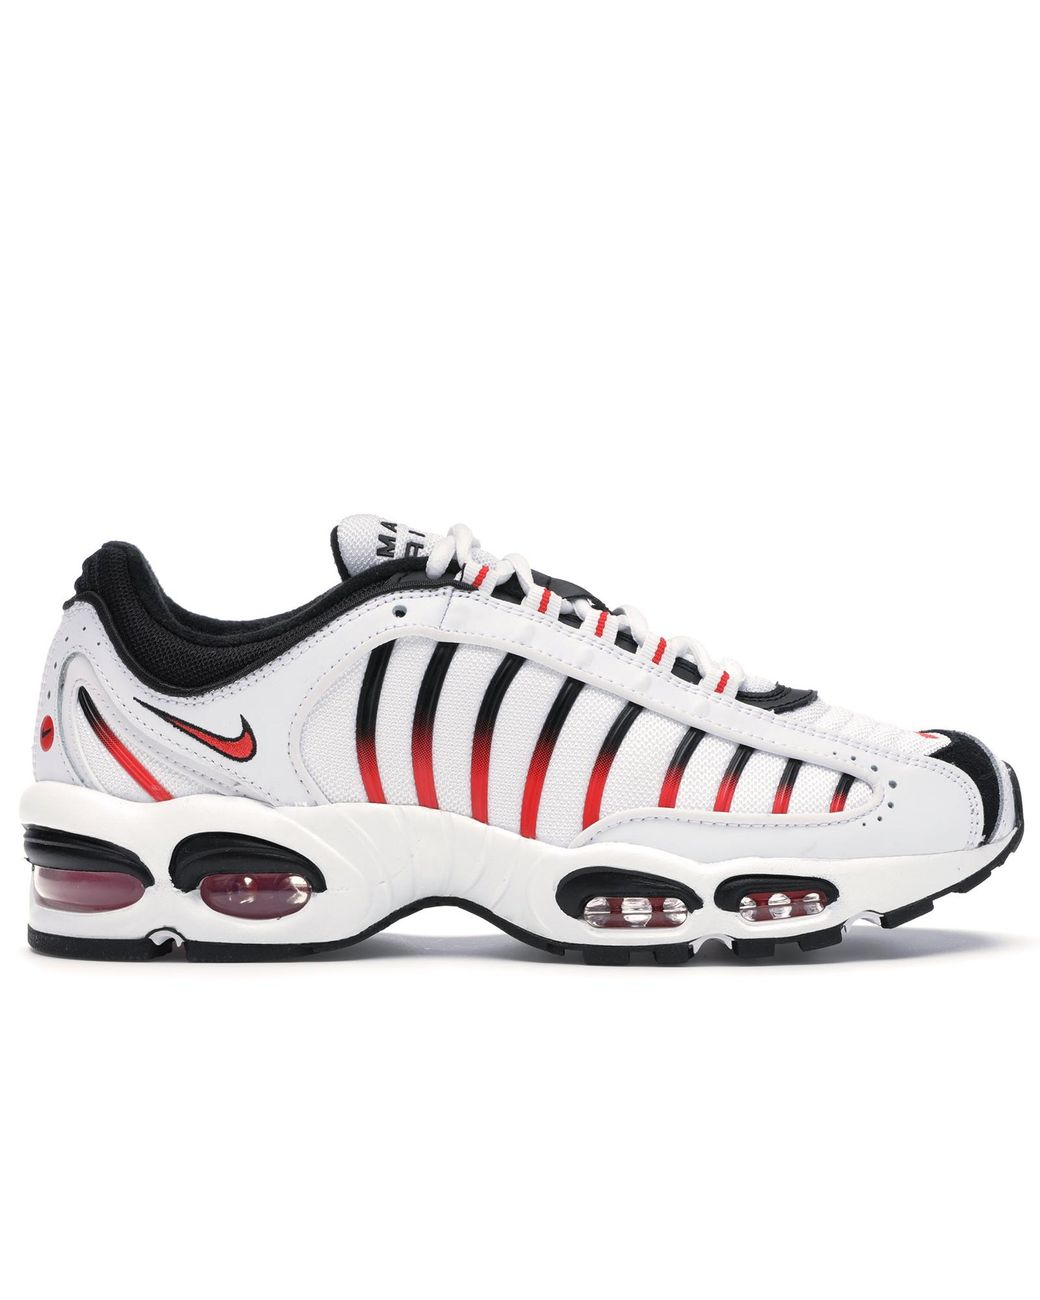 Air Max Triax 96 in WhiteBlackRed